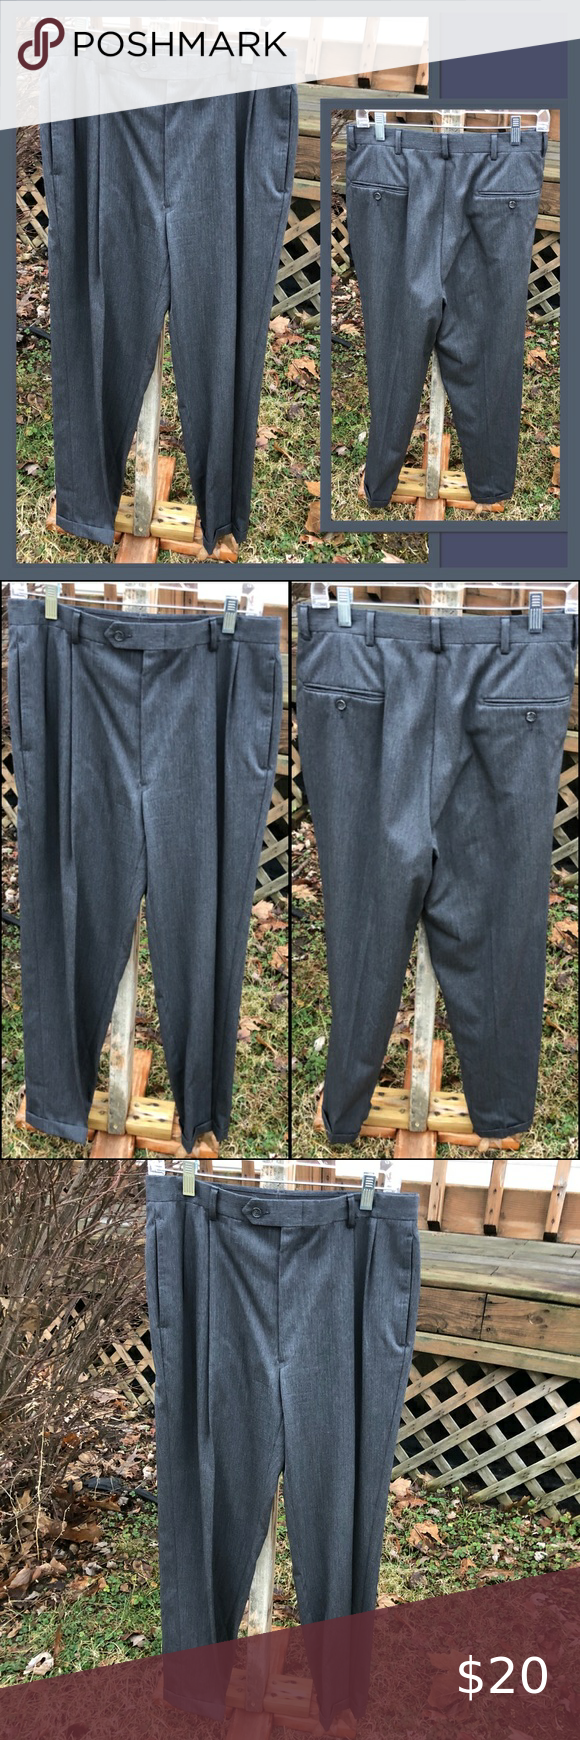 Austin Reed Cuffed Charcoal Trousers Euc In 2020 Dress Slacks Austin Reed Trousers